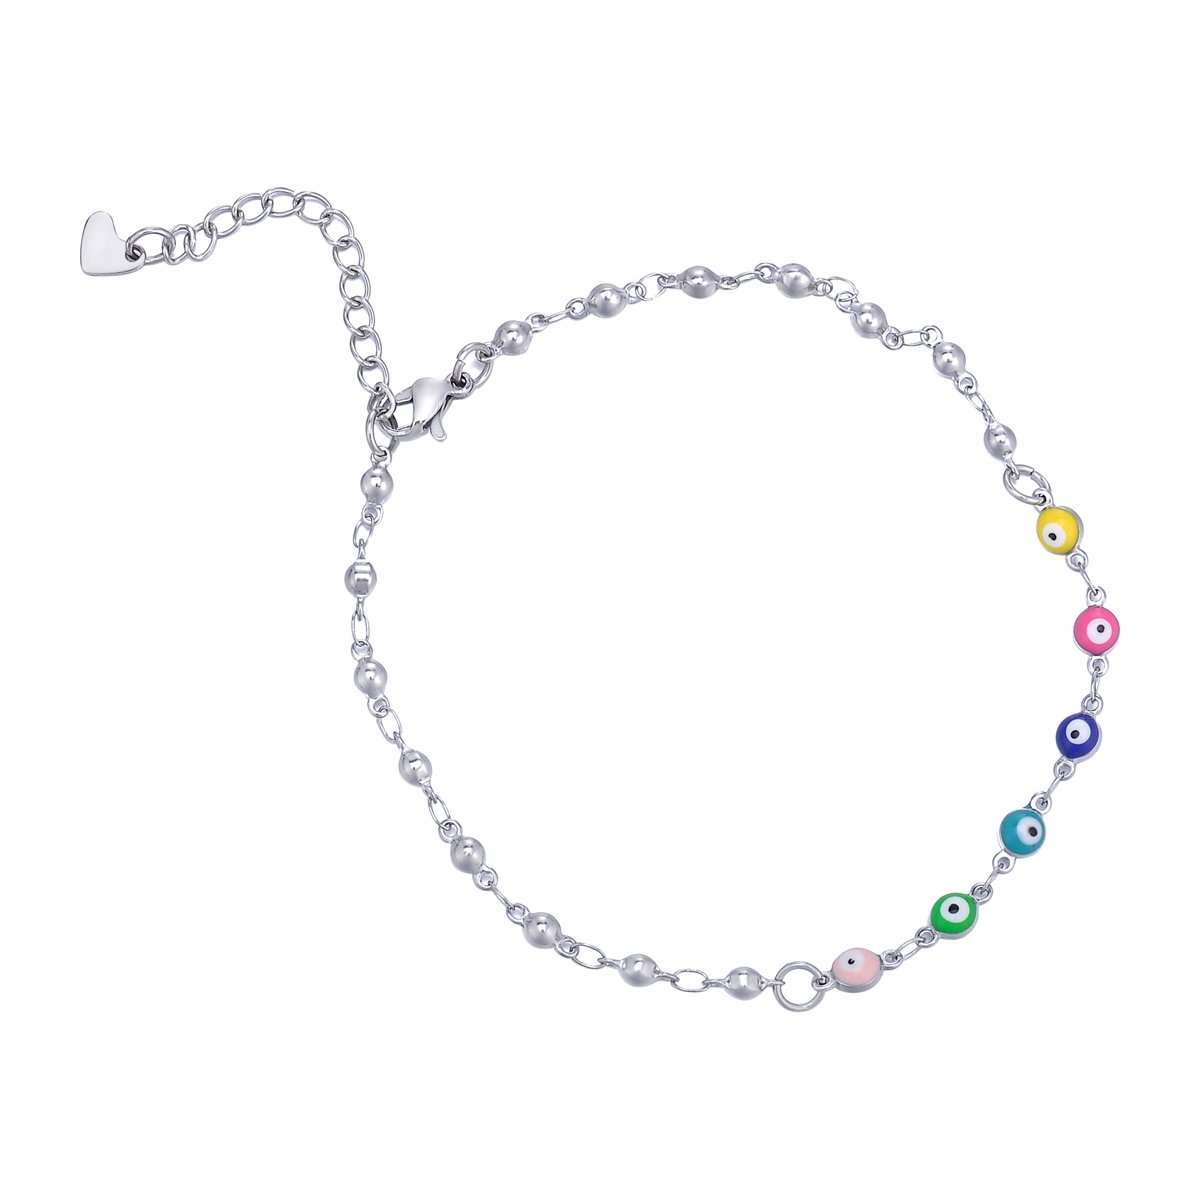 HooAMI Stainless Steel Silver Anklet Mini Evil Eye Chain Ankle Bracelet for Women & Girls Terrific-Young BETY134482